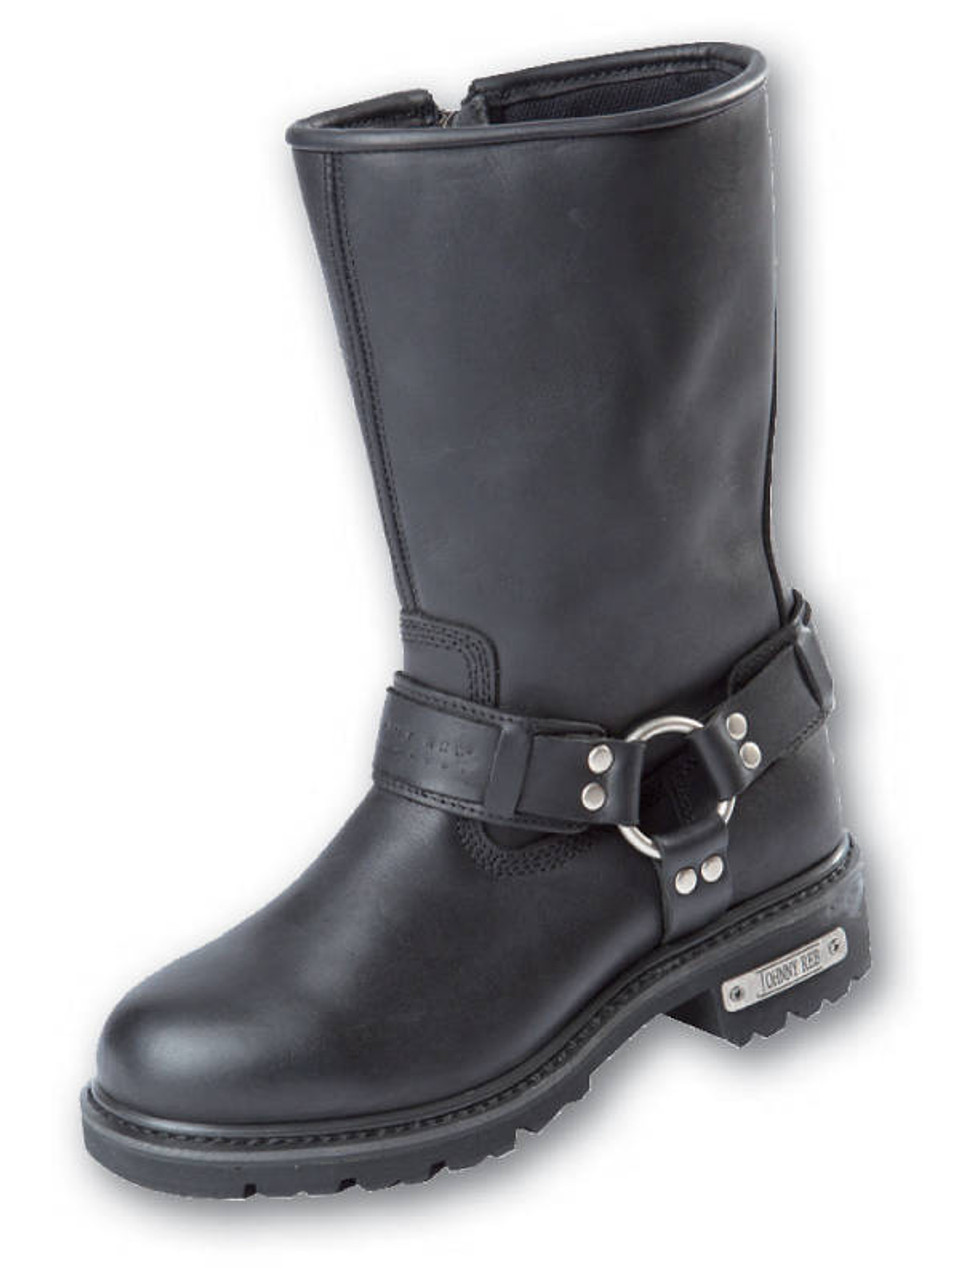 bca85f0f604 Johnny Reb Rogue Zip Up Motorcycle Boot